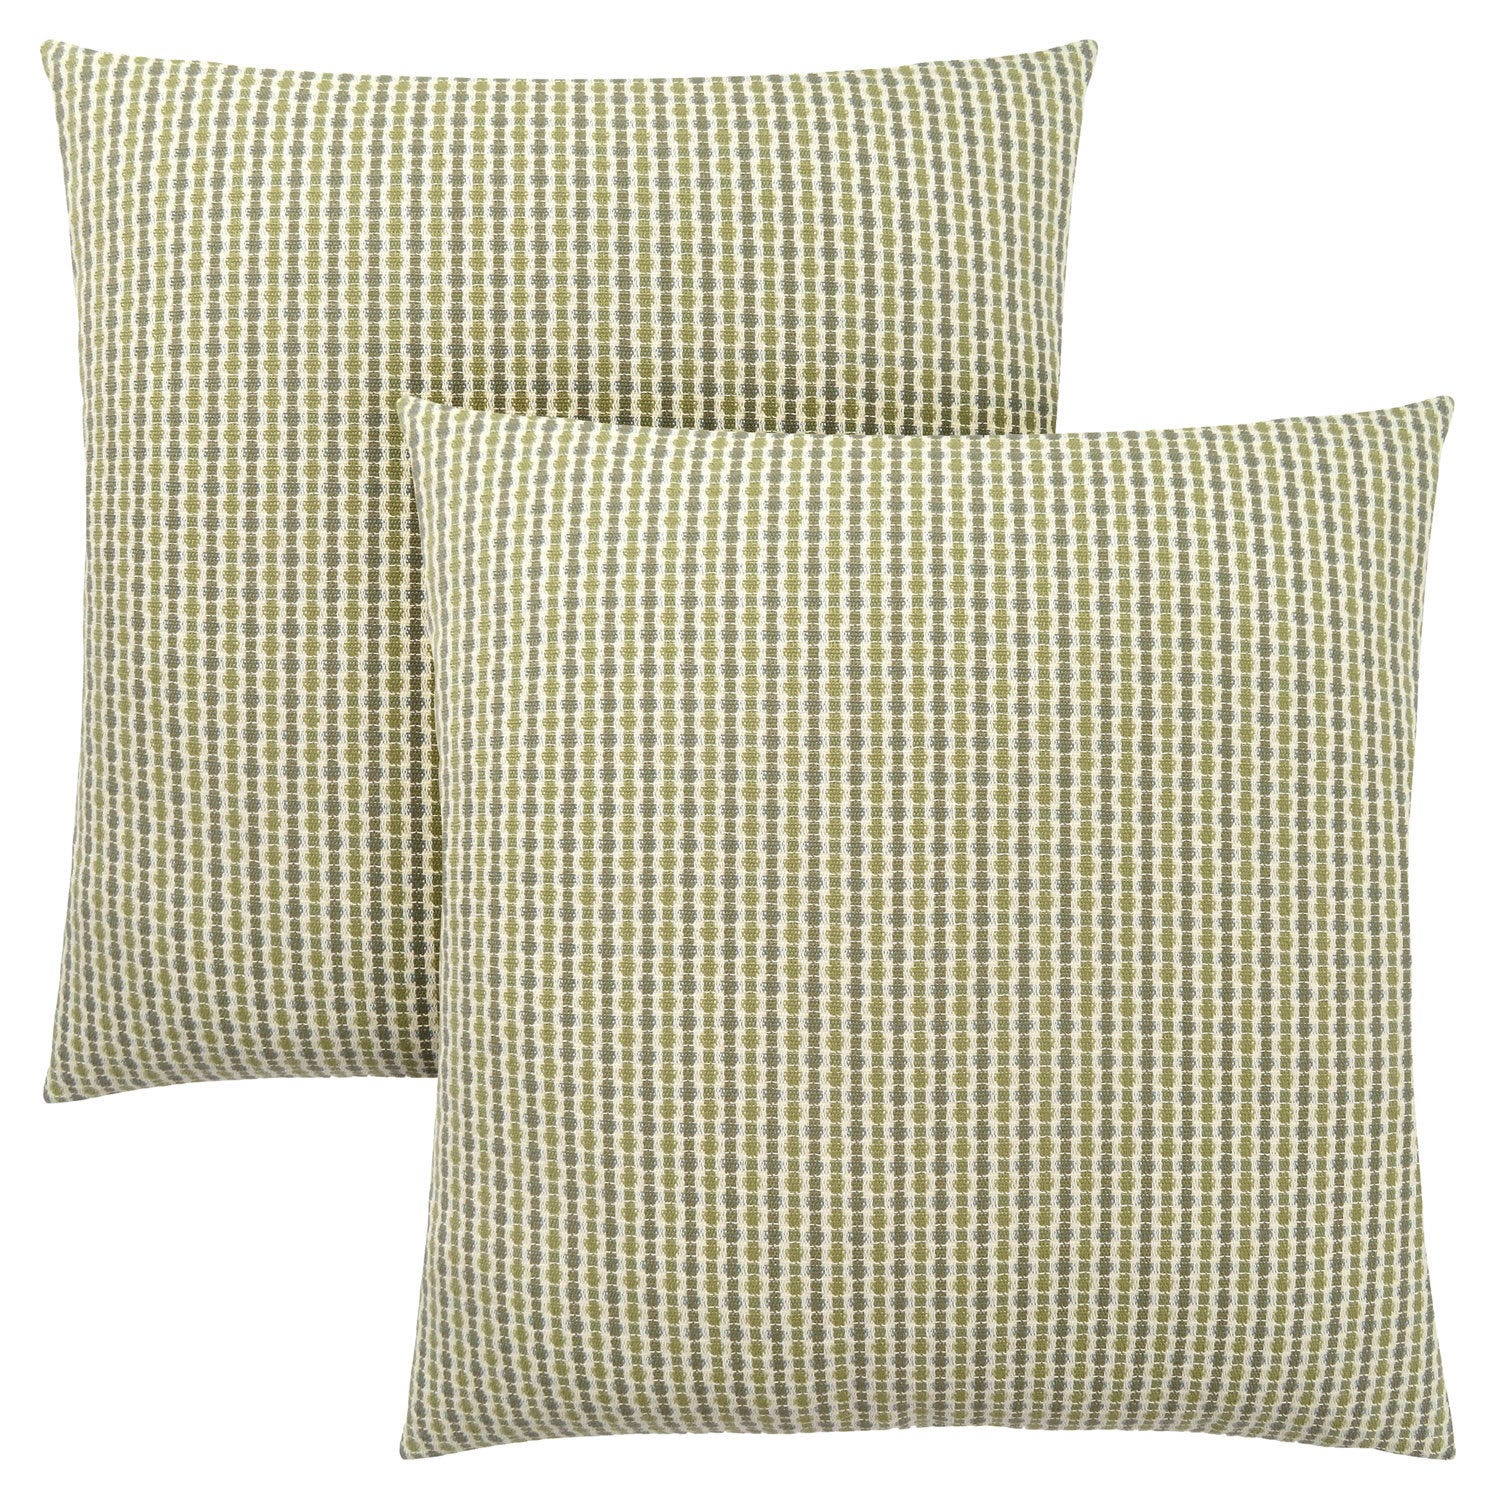 Pillow 18 X 18 Light Dark Green Abstract Dot 2pcs